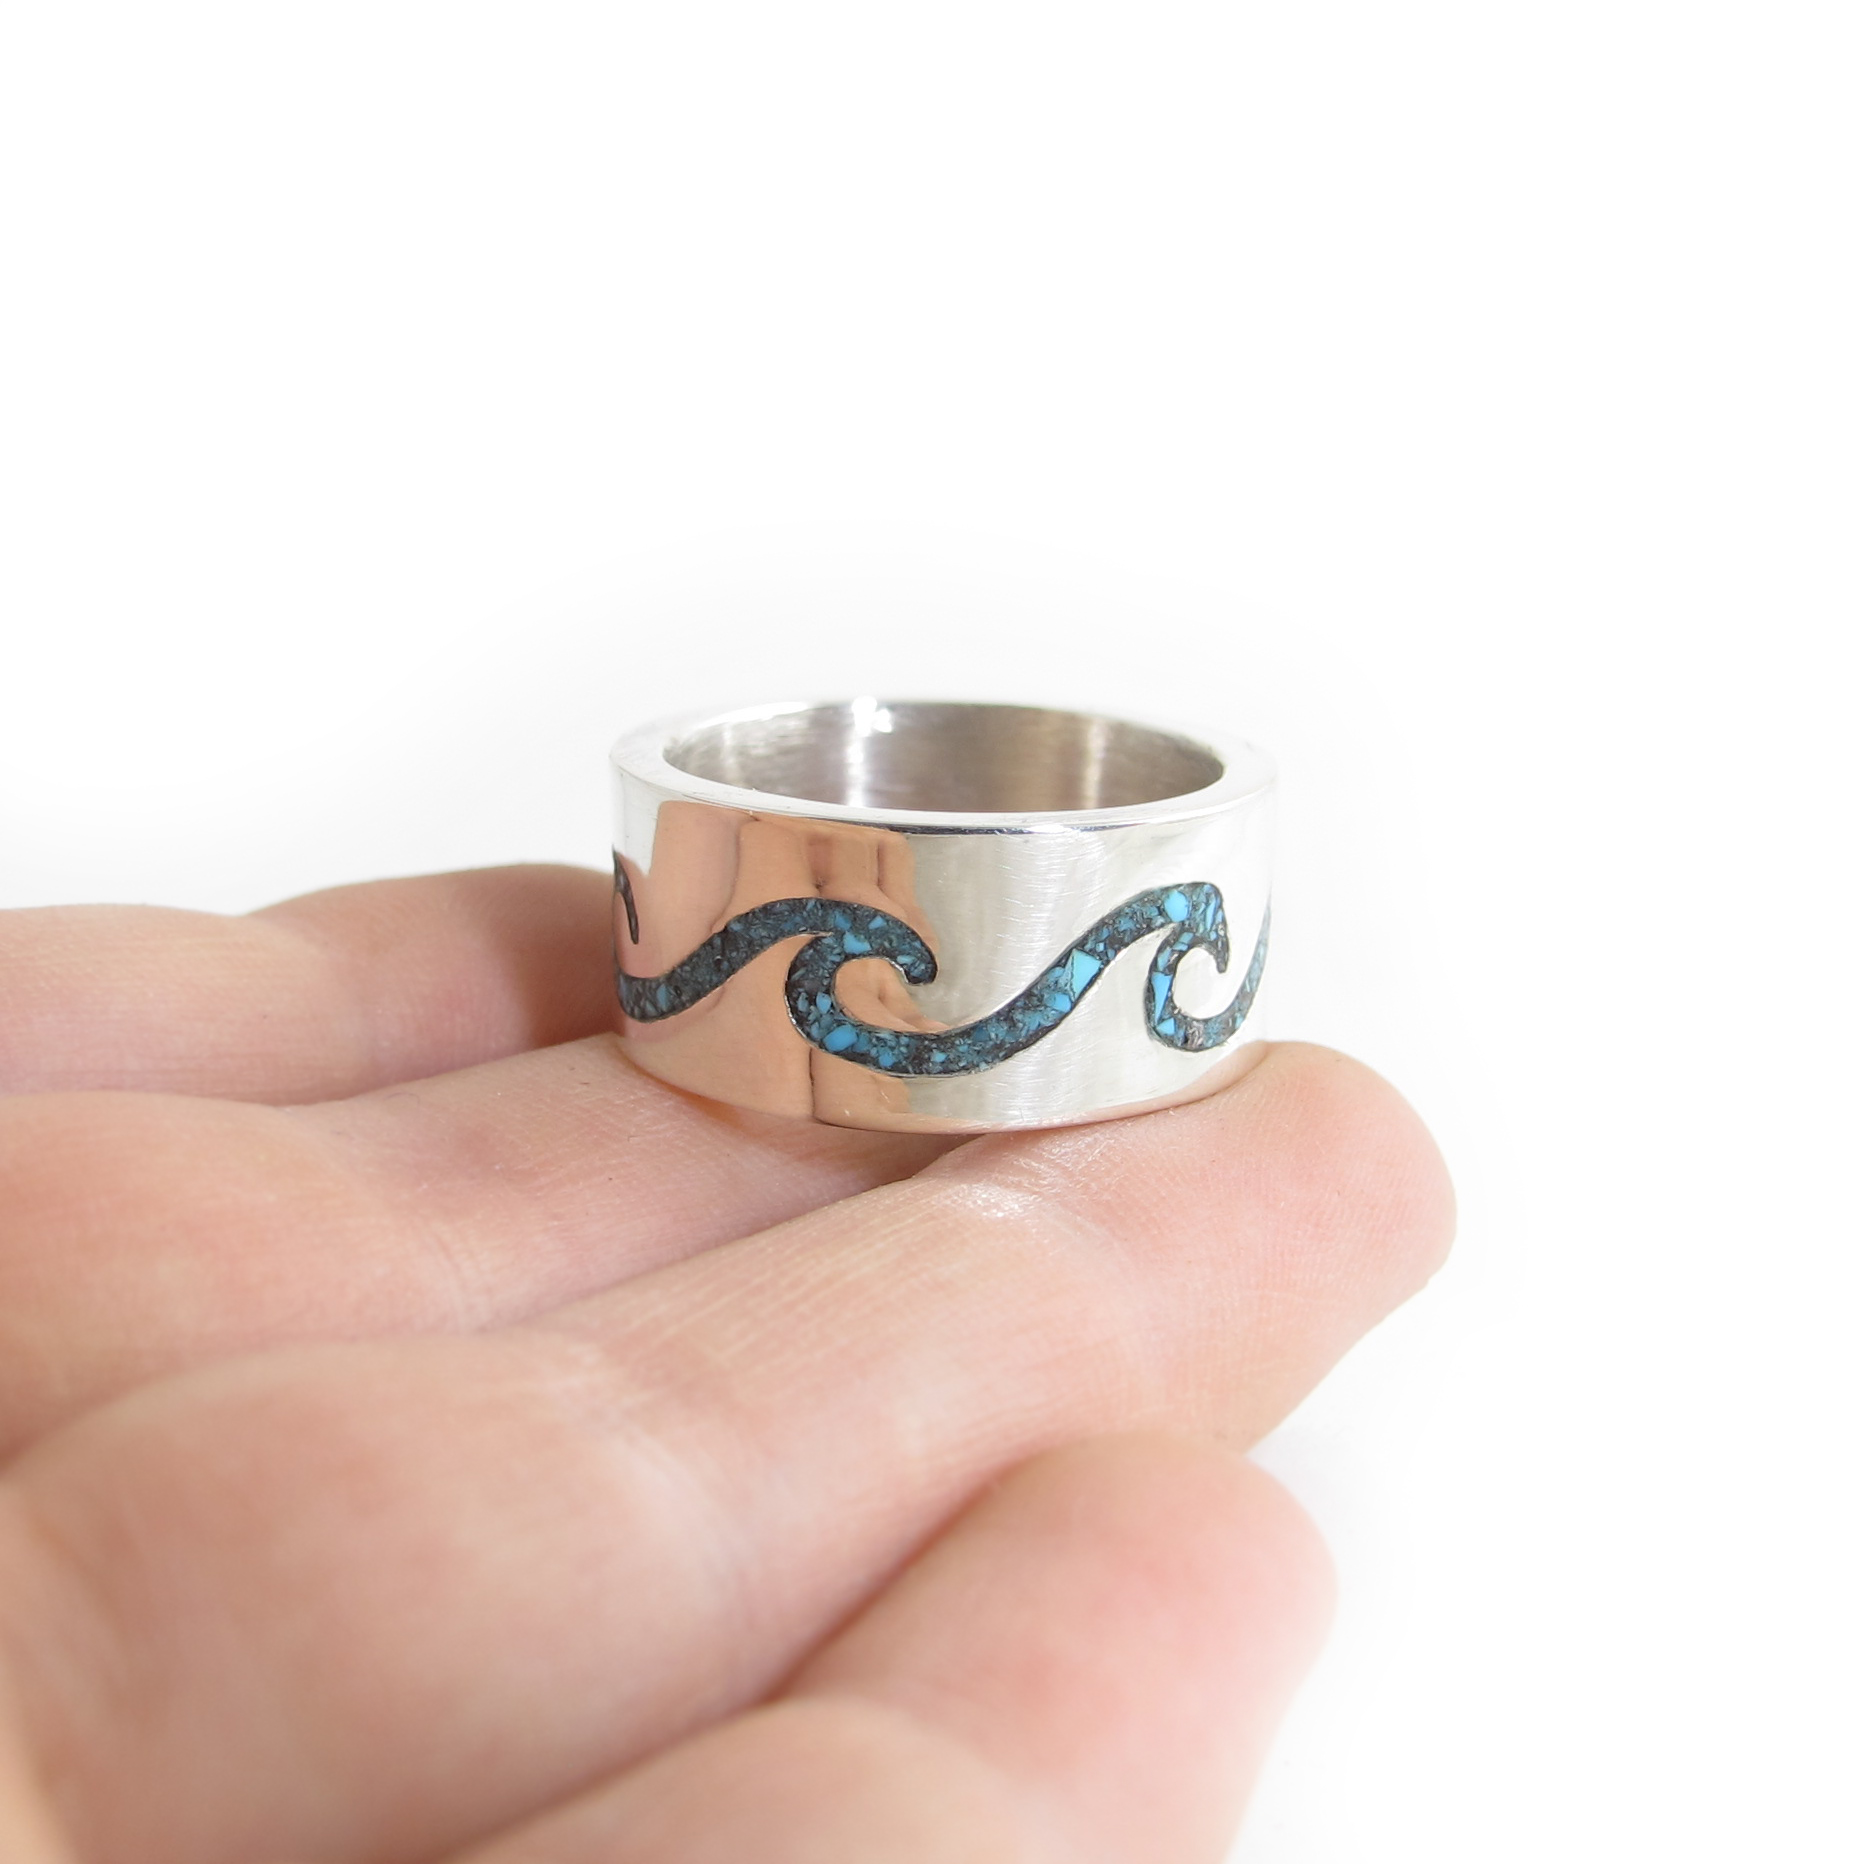 Infinity Wave Ring with Turquoise Chip Inlay